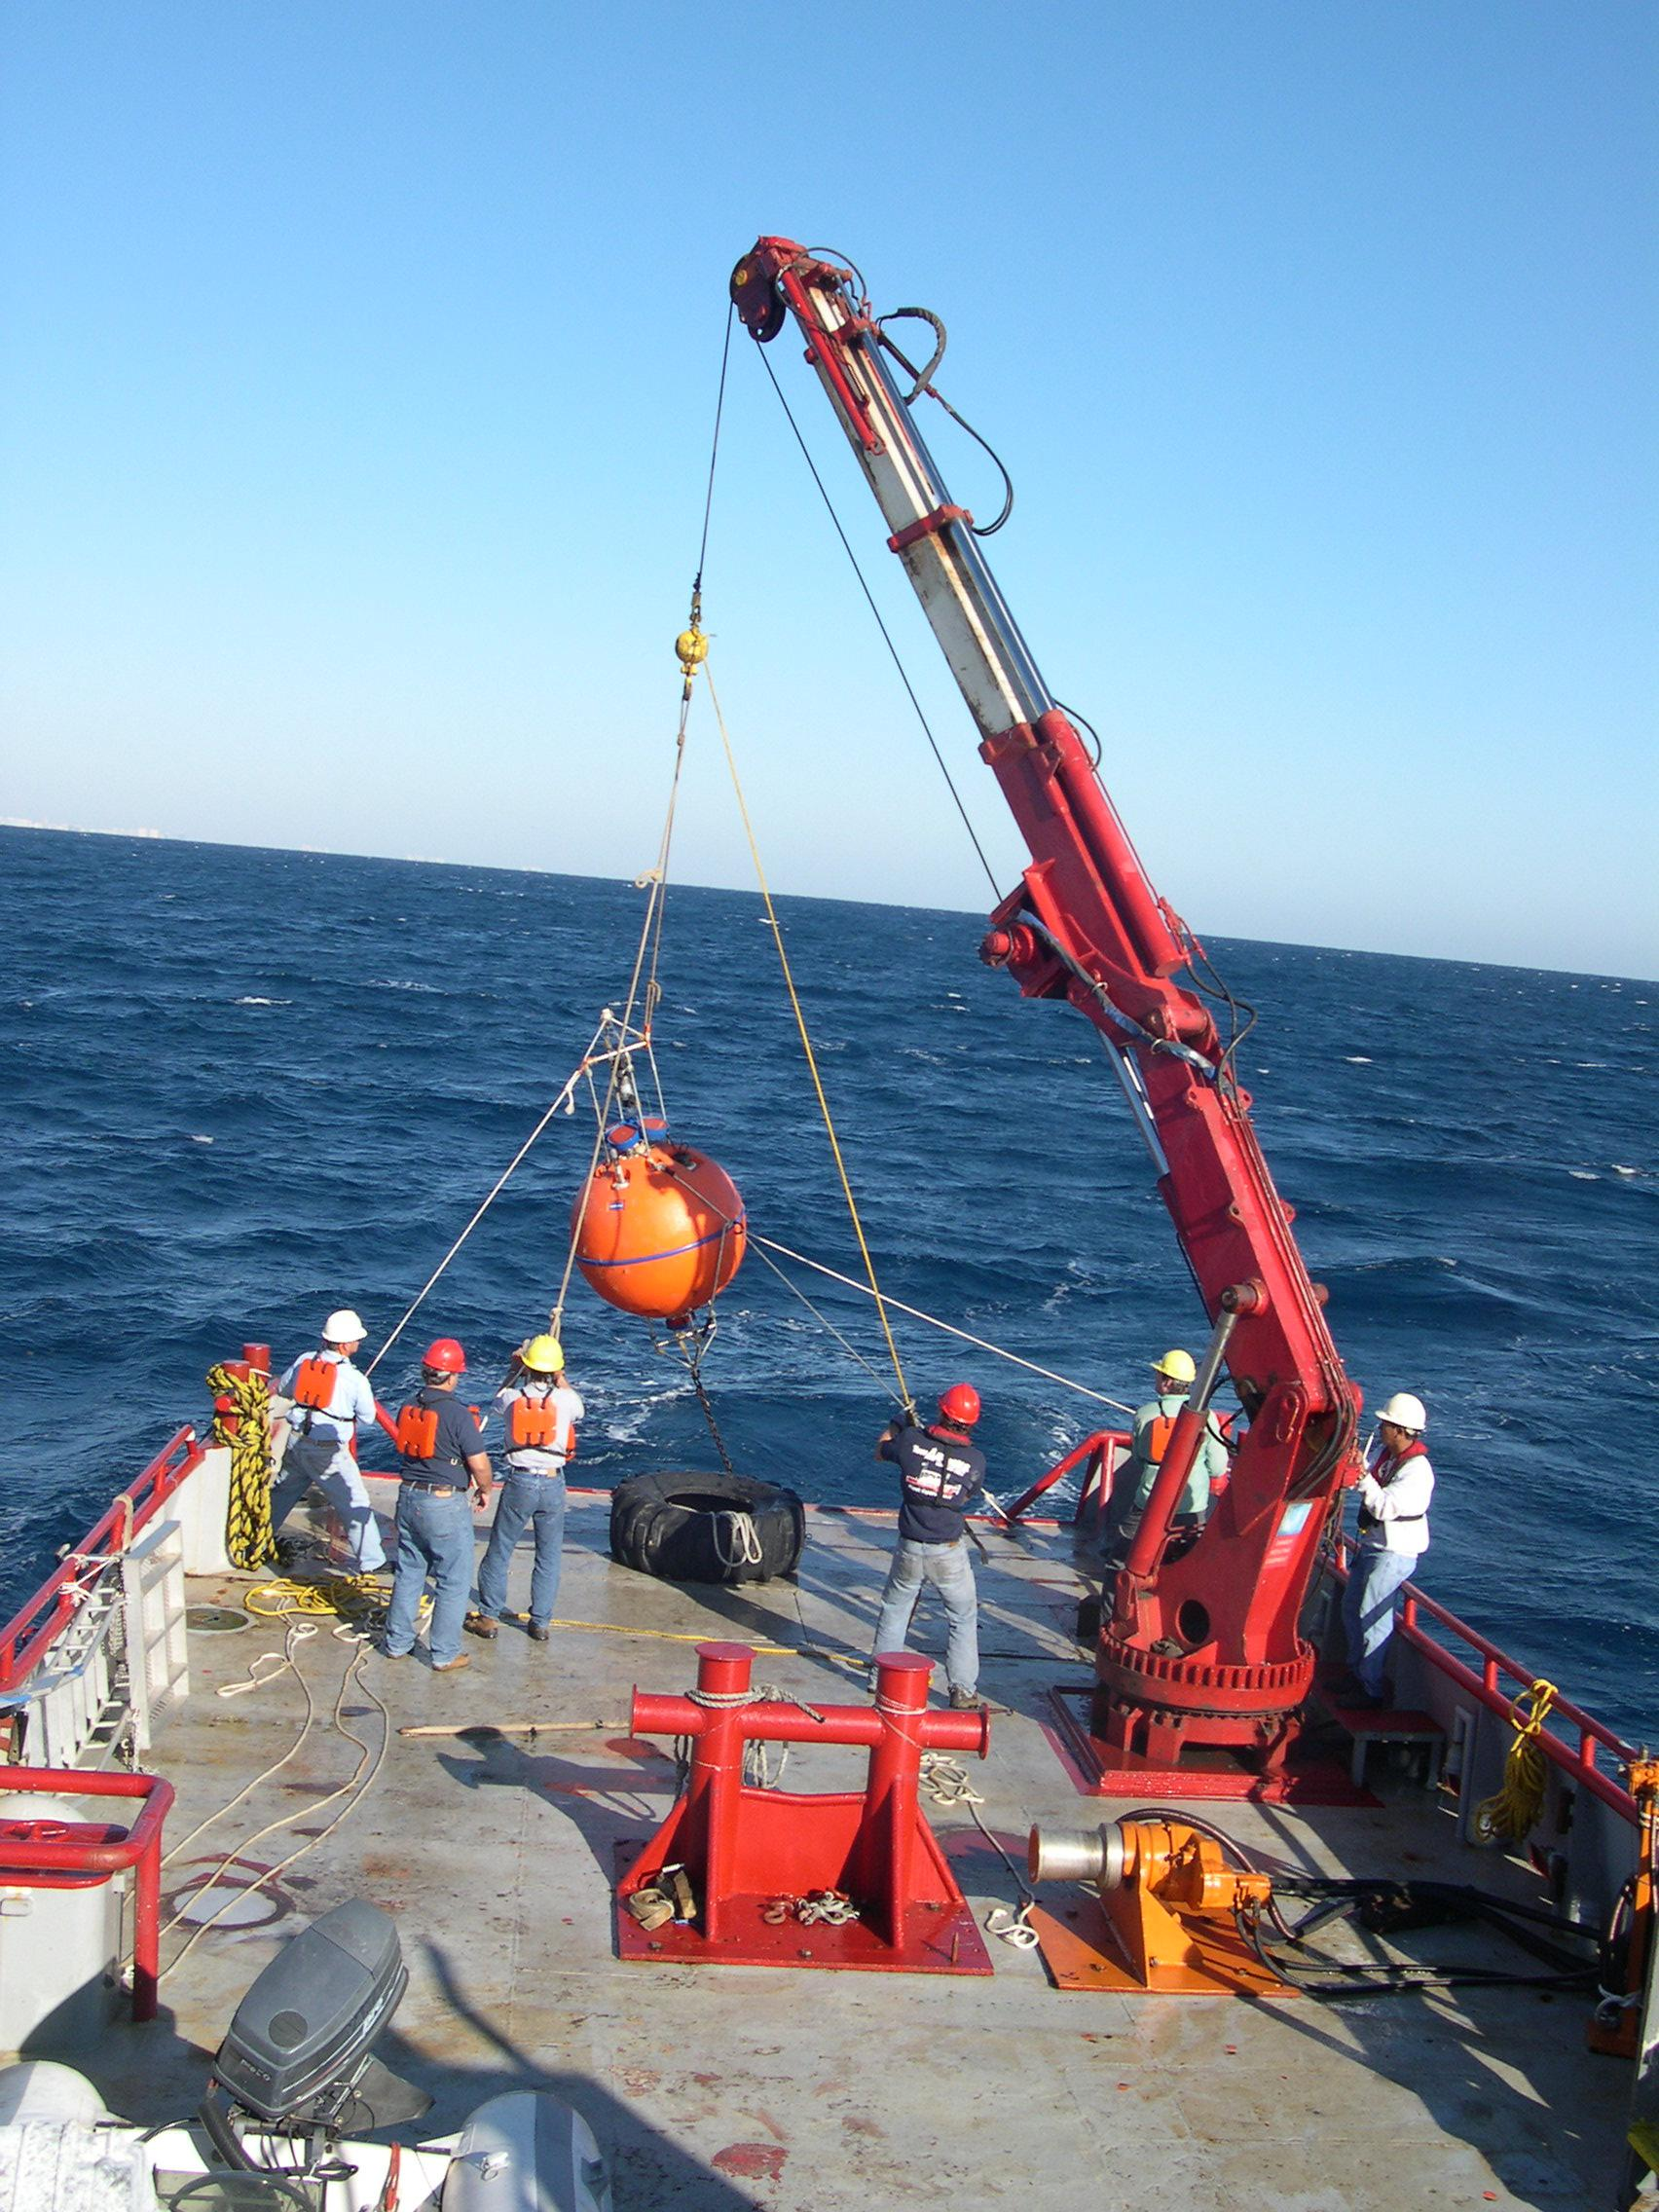 Mooring Matters: When low is the way to go. - DeepWater ...